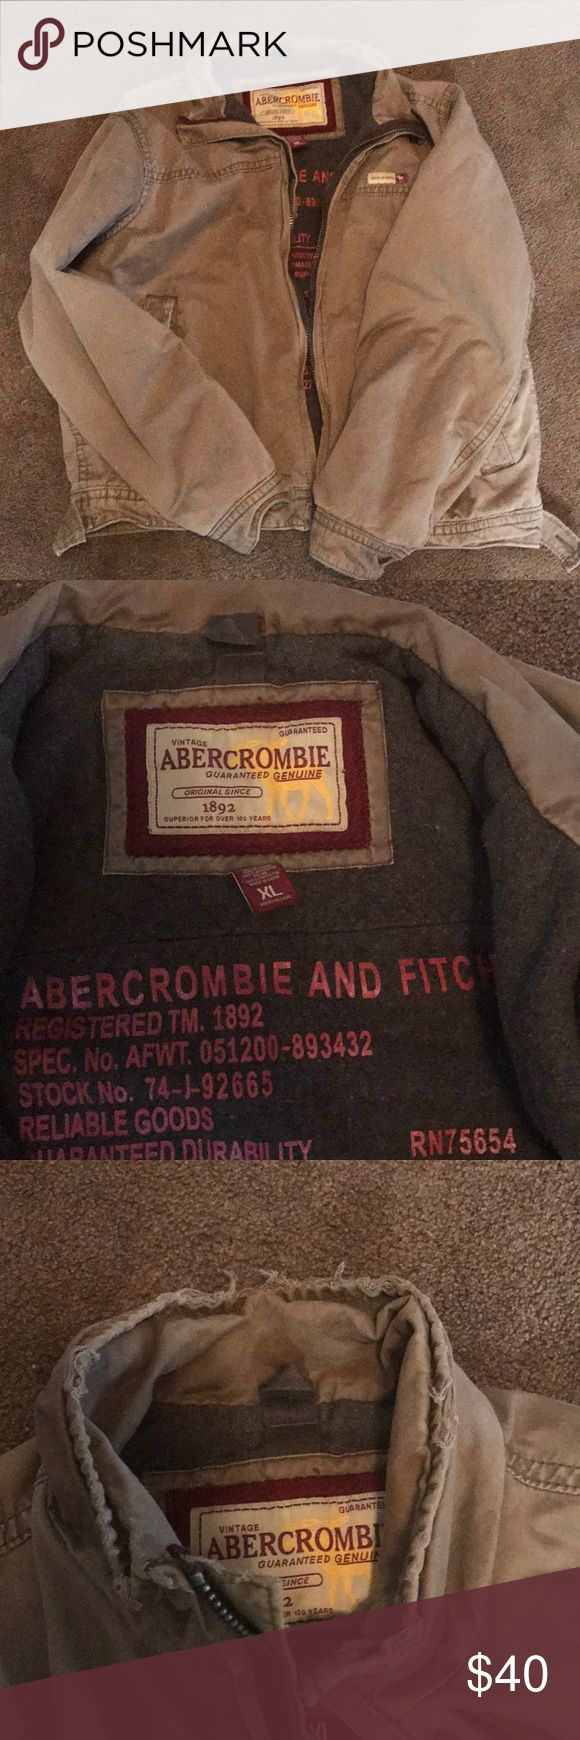 Abercrombie and Fitch jacket Abercrombie and Fitch jacket size xl Vintage style  jacket. Jackets & Coats Bomber & Varsity